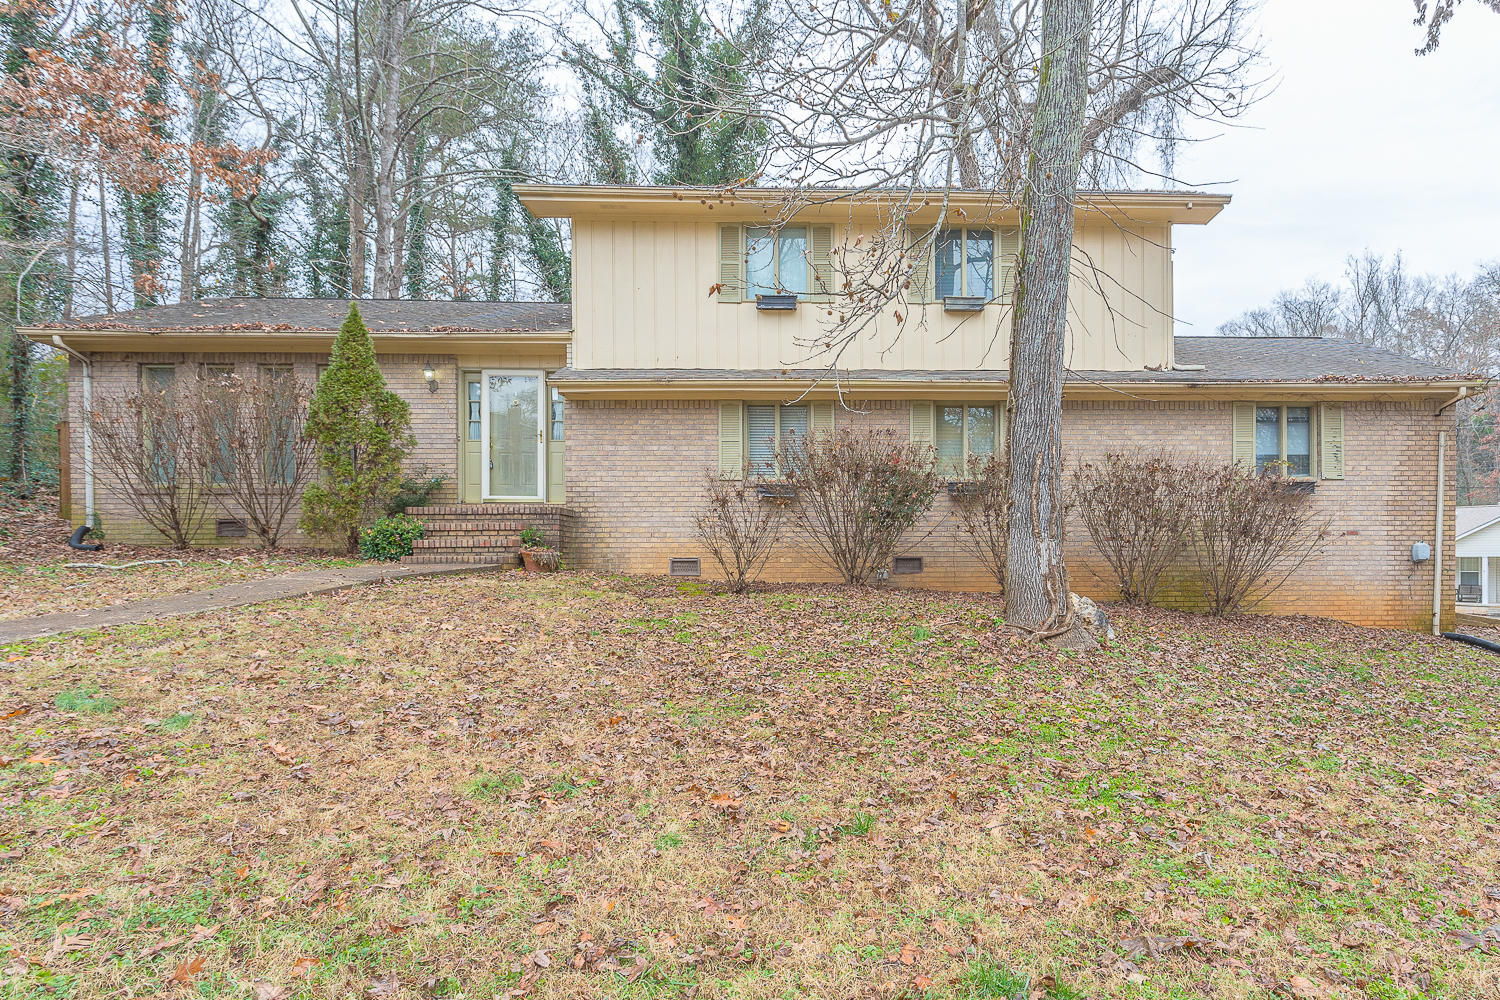 6310 Ridge Lake Rd, Hixson, TN 37343